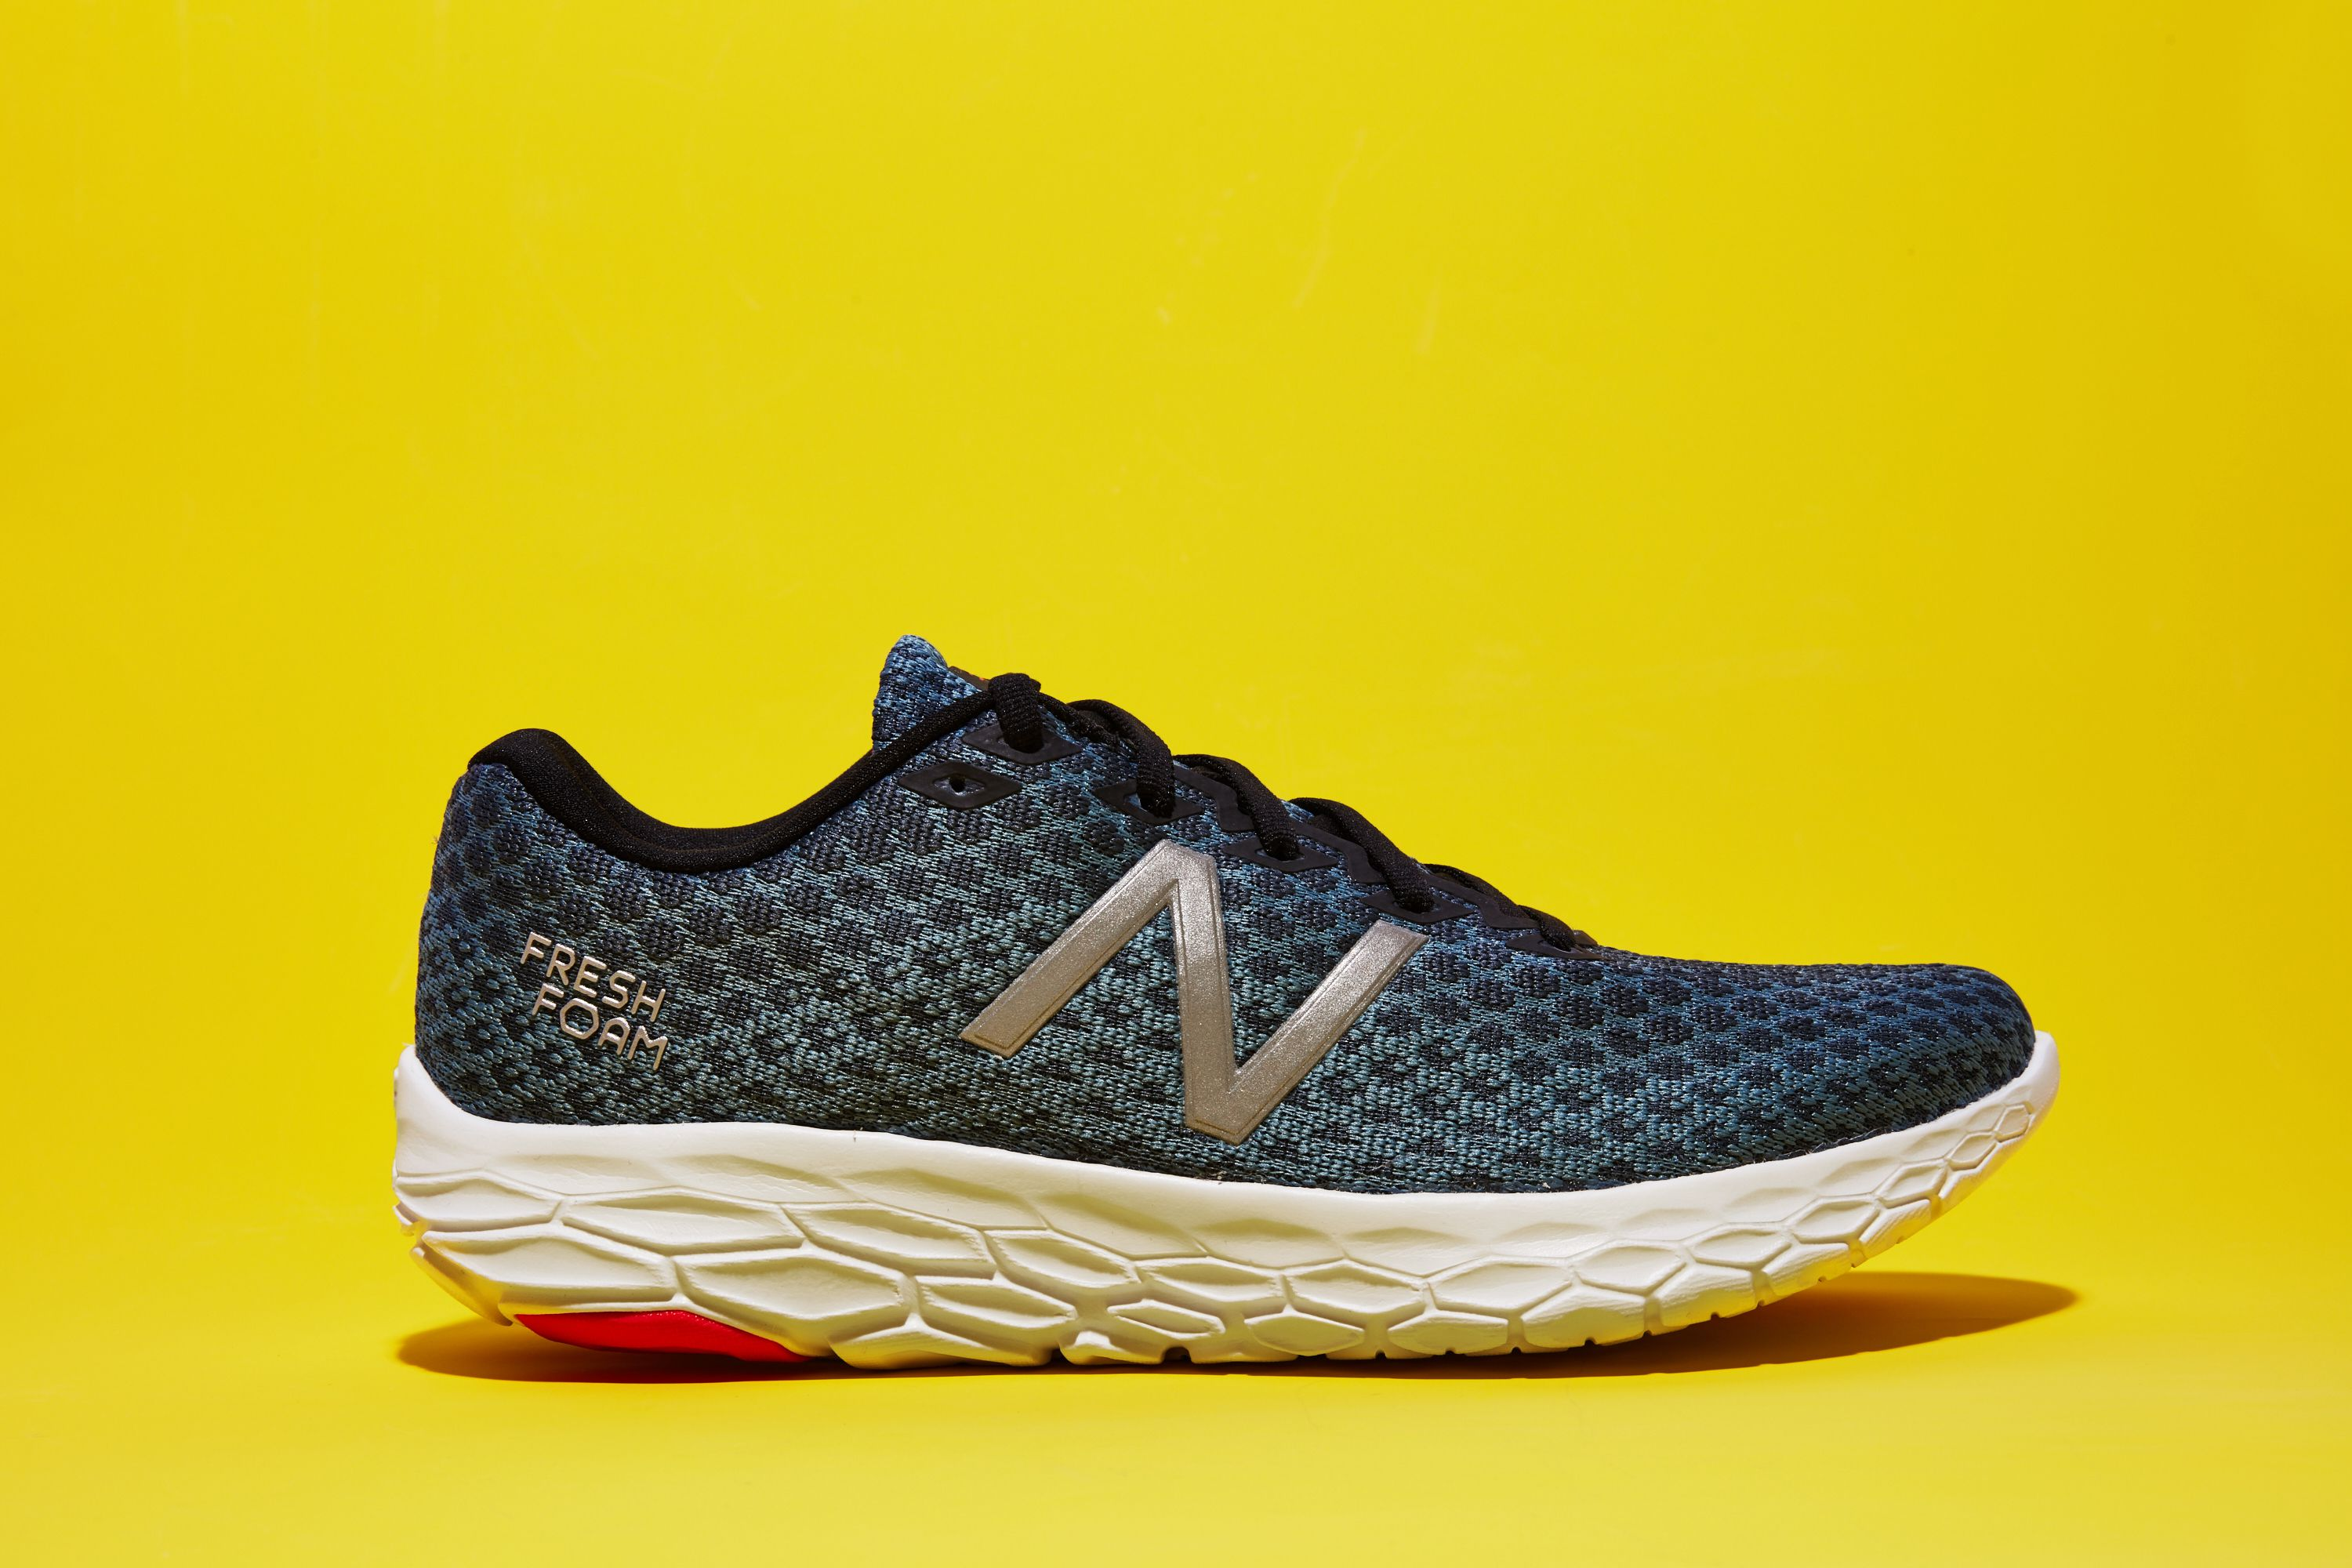 3d8d03ab Best New Balance Running Shoes | New Balance Shoe Reviews 2019